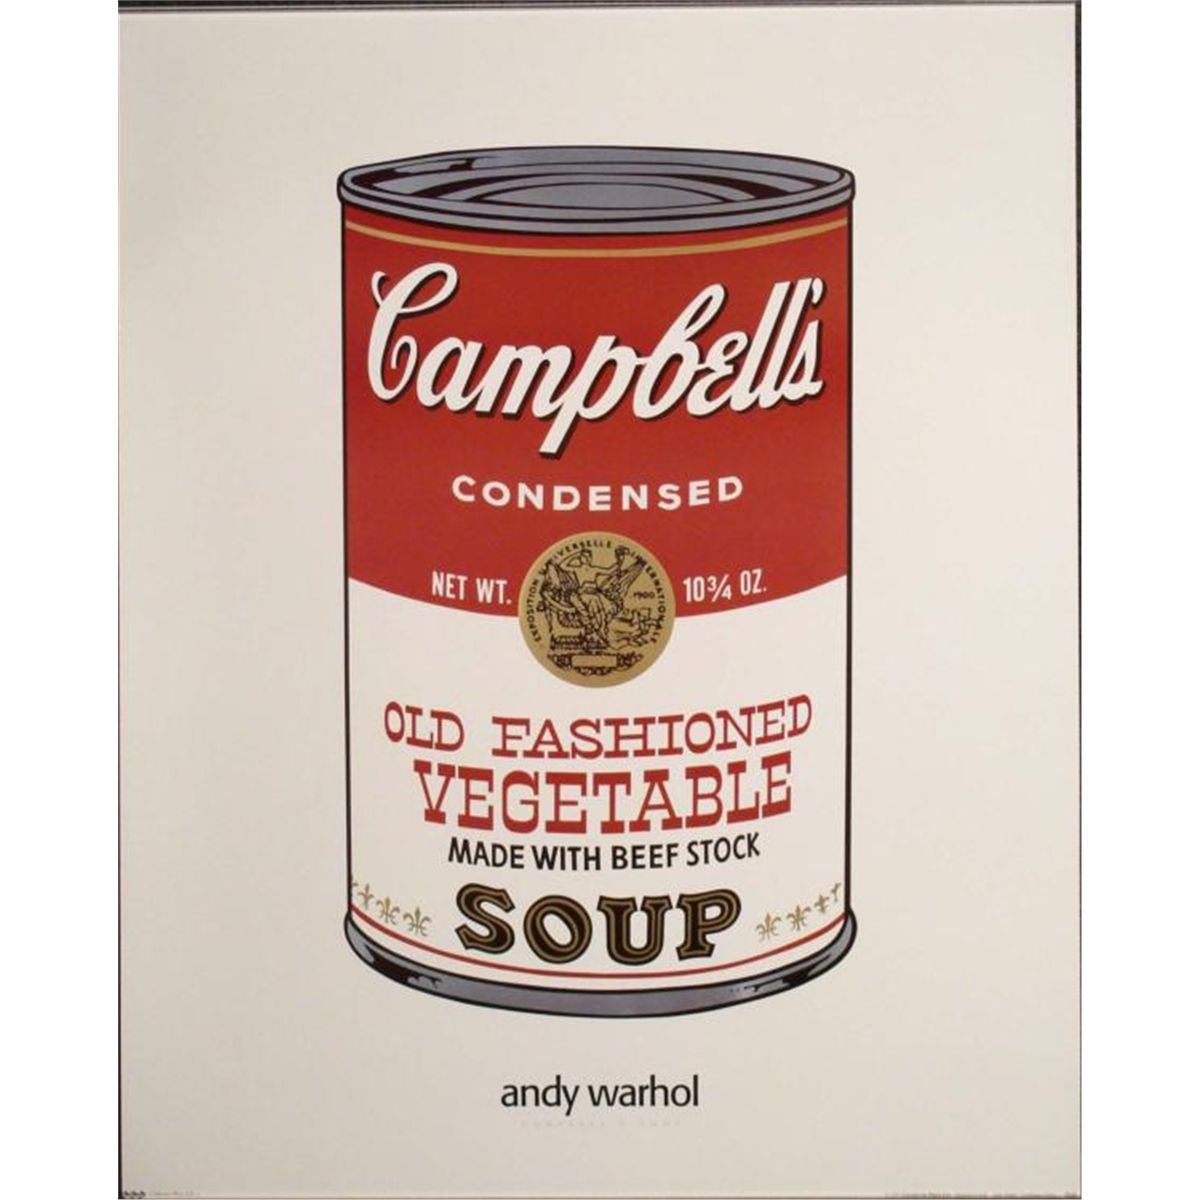 Debit Card Receipt Pdf Campbell Soup Cans Andy Warhol Art Print Invoice Layouts Excel with Send Email With Read Receipt Excel  How Long To Keep Receipts And Bills Word